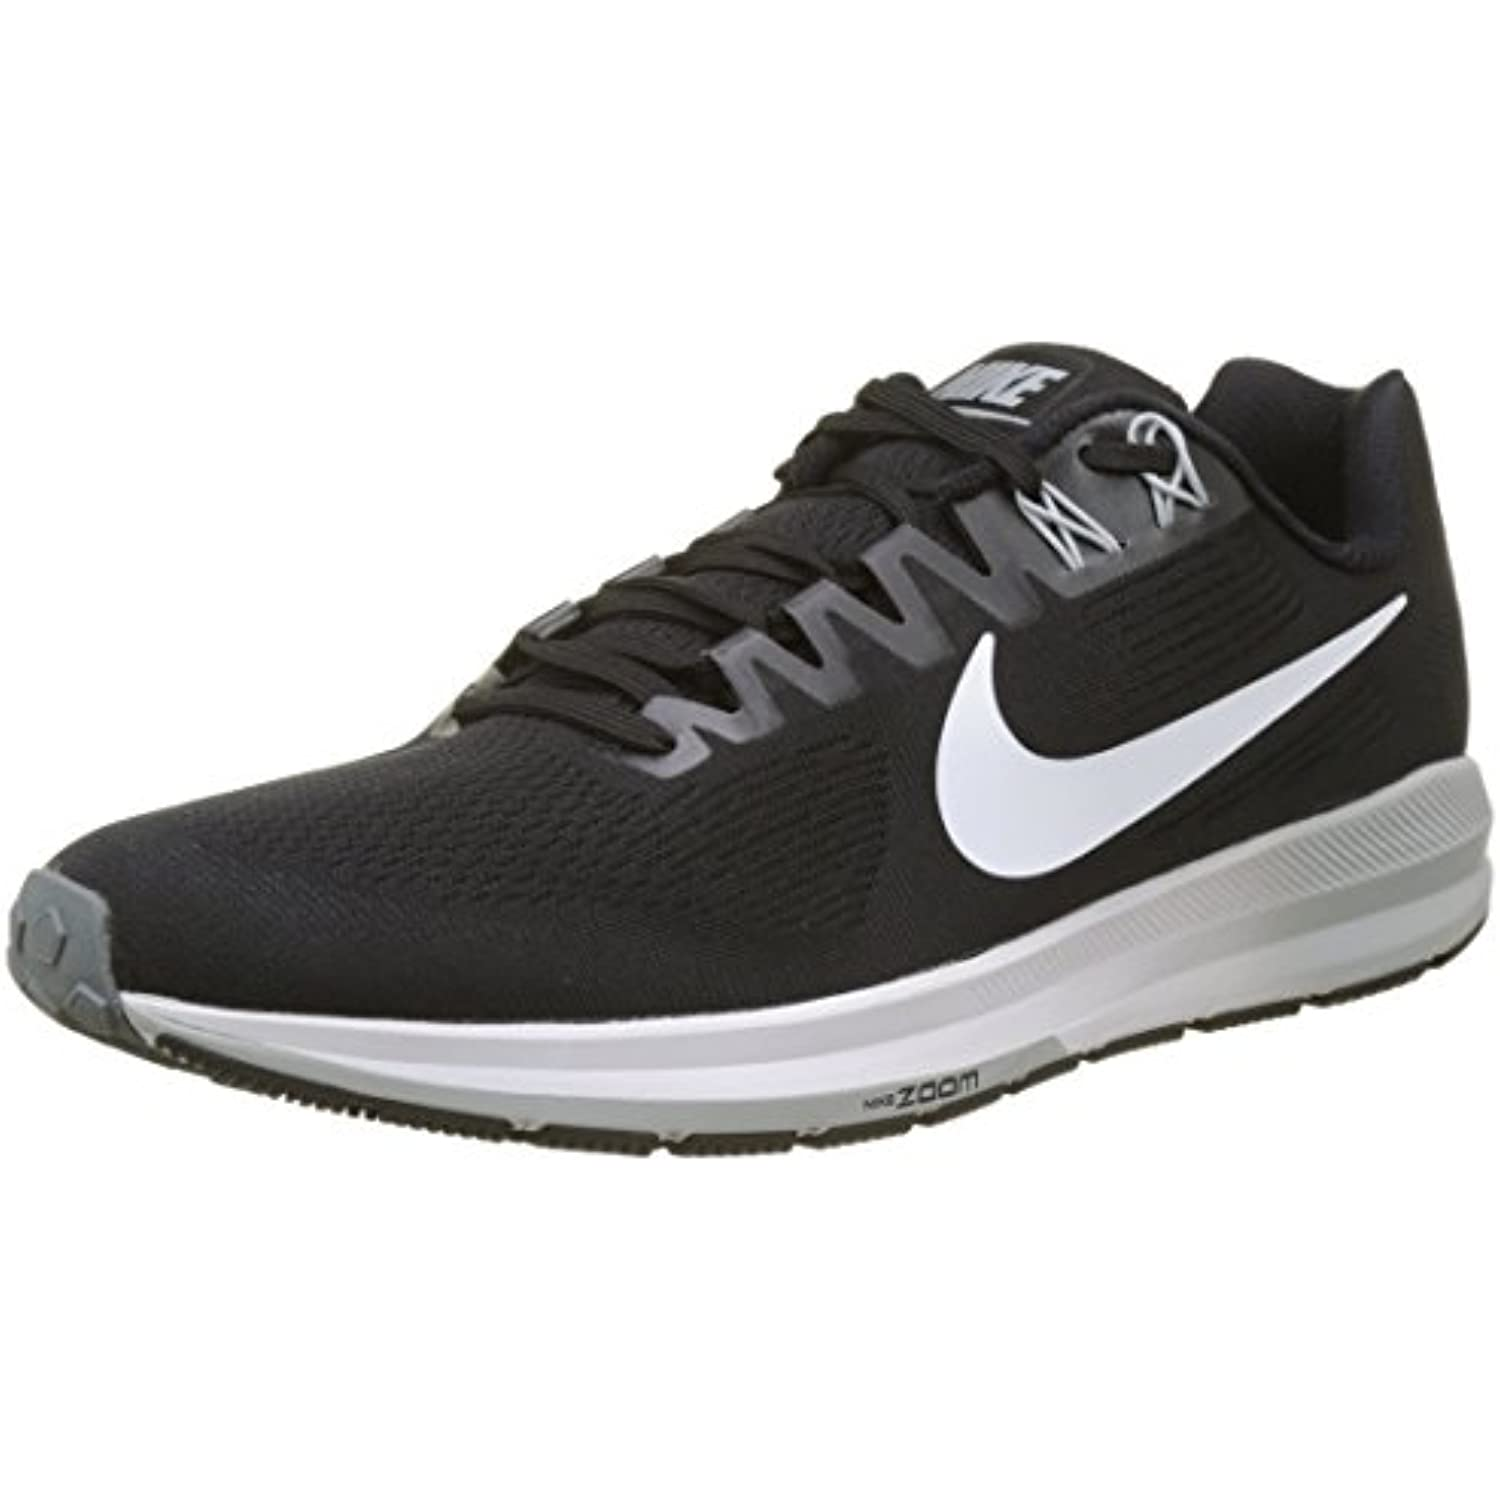 sports shoes 550a2 5ba77 NIKE Air Zoom Structure 21, 21, 21, Chaussures de Running Homme - B07457RXC9